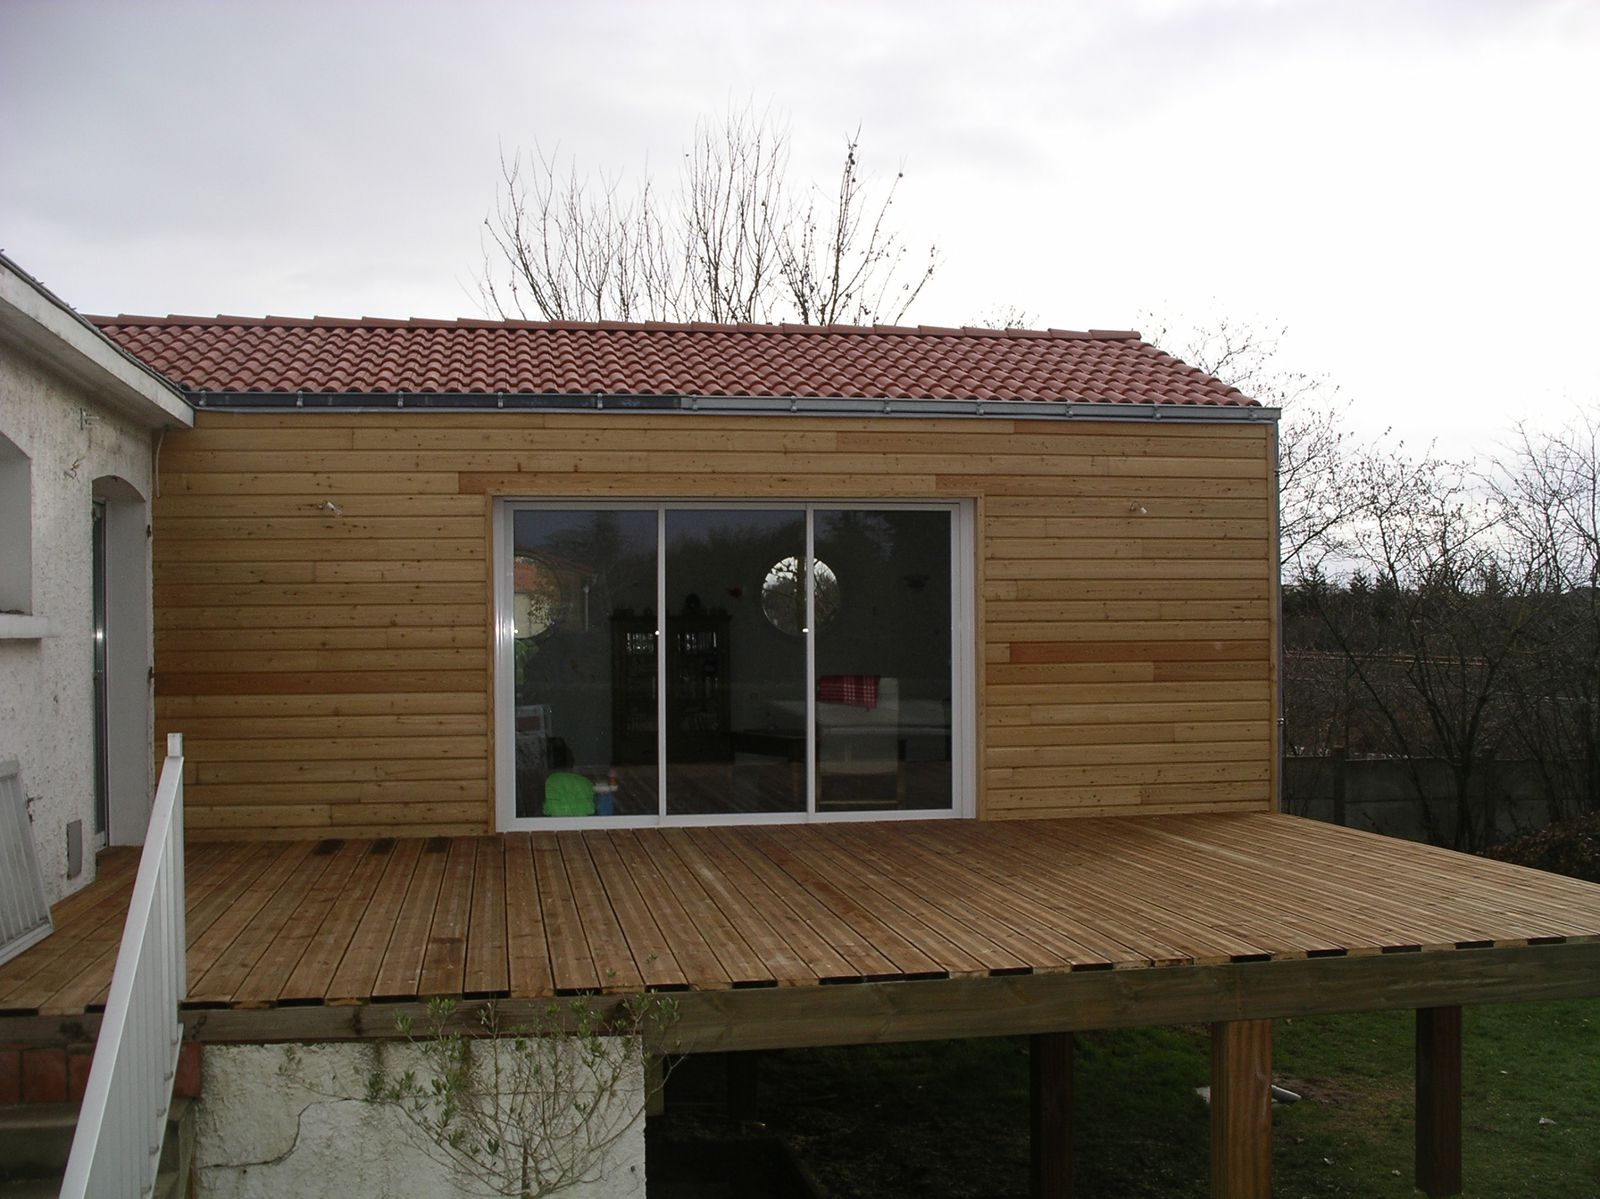 Exemple d 39 extension en ossature bois sur pilotis en iroko for Prix d une extension de maison